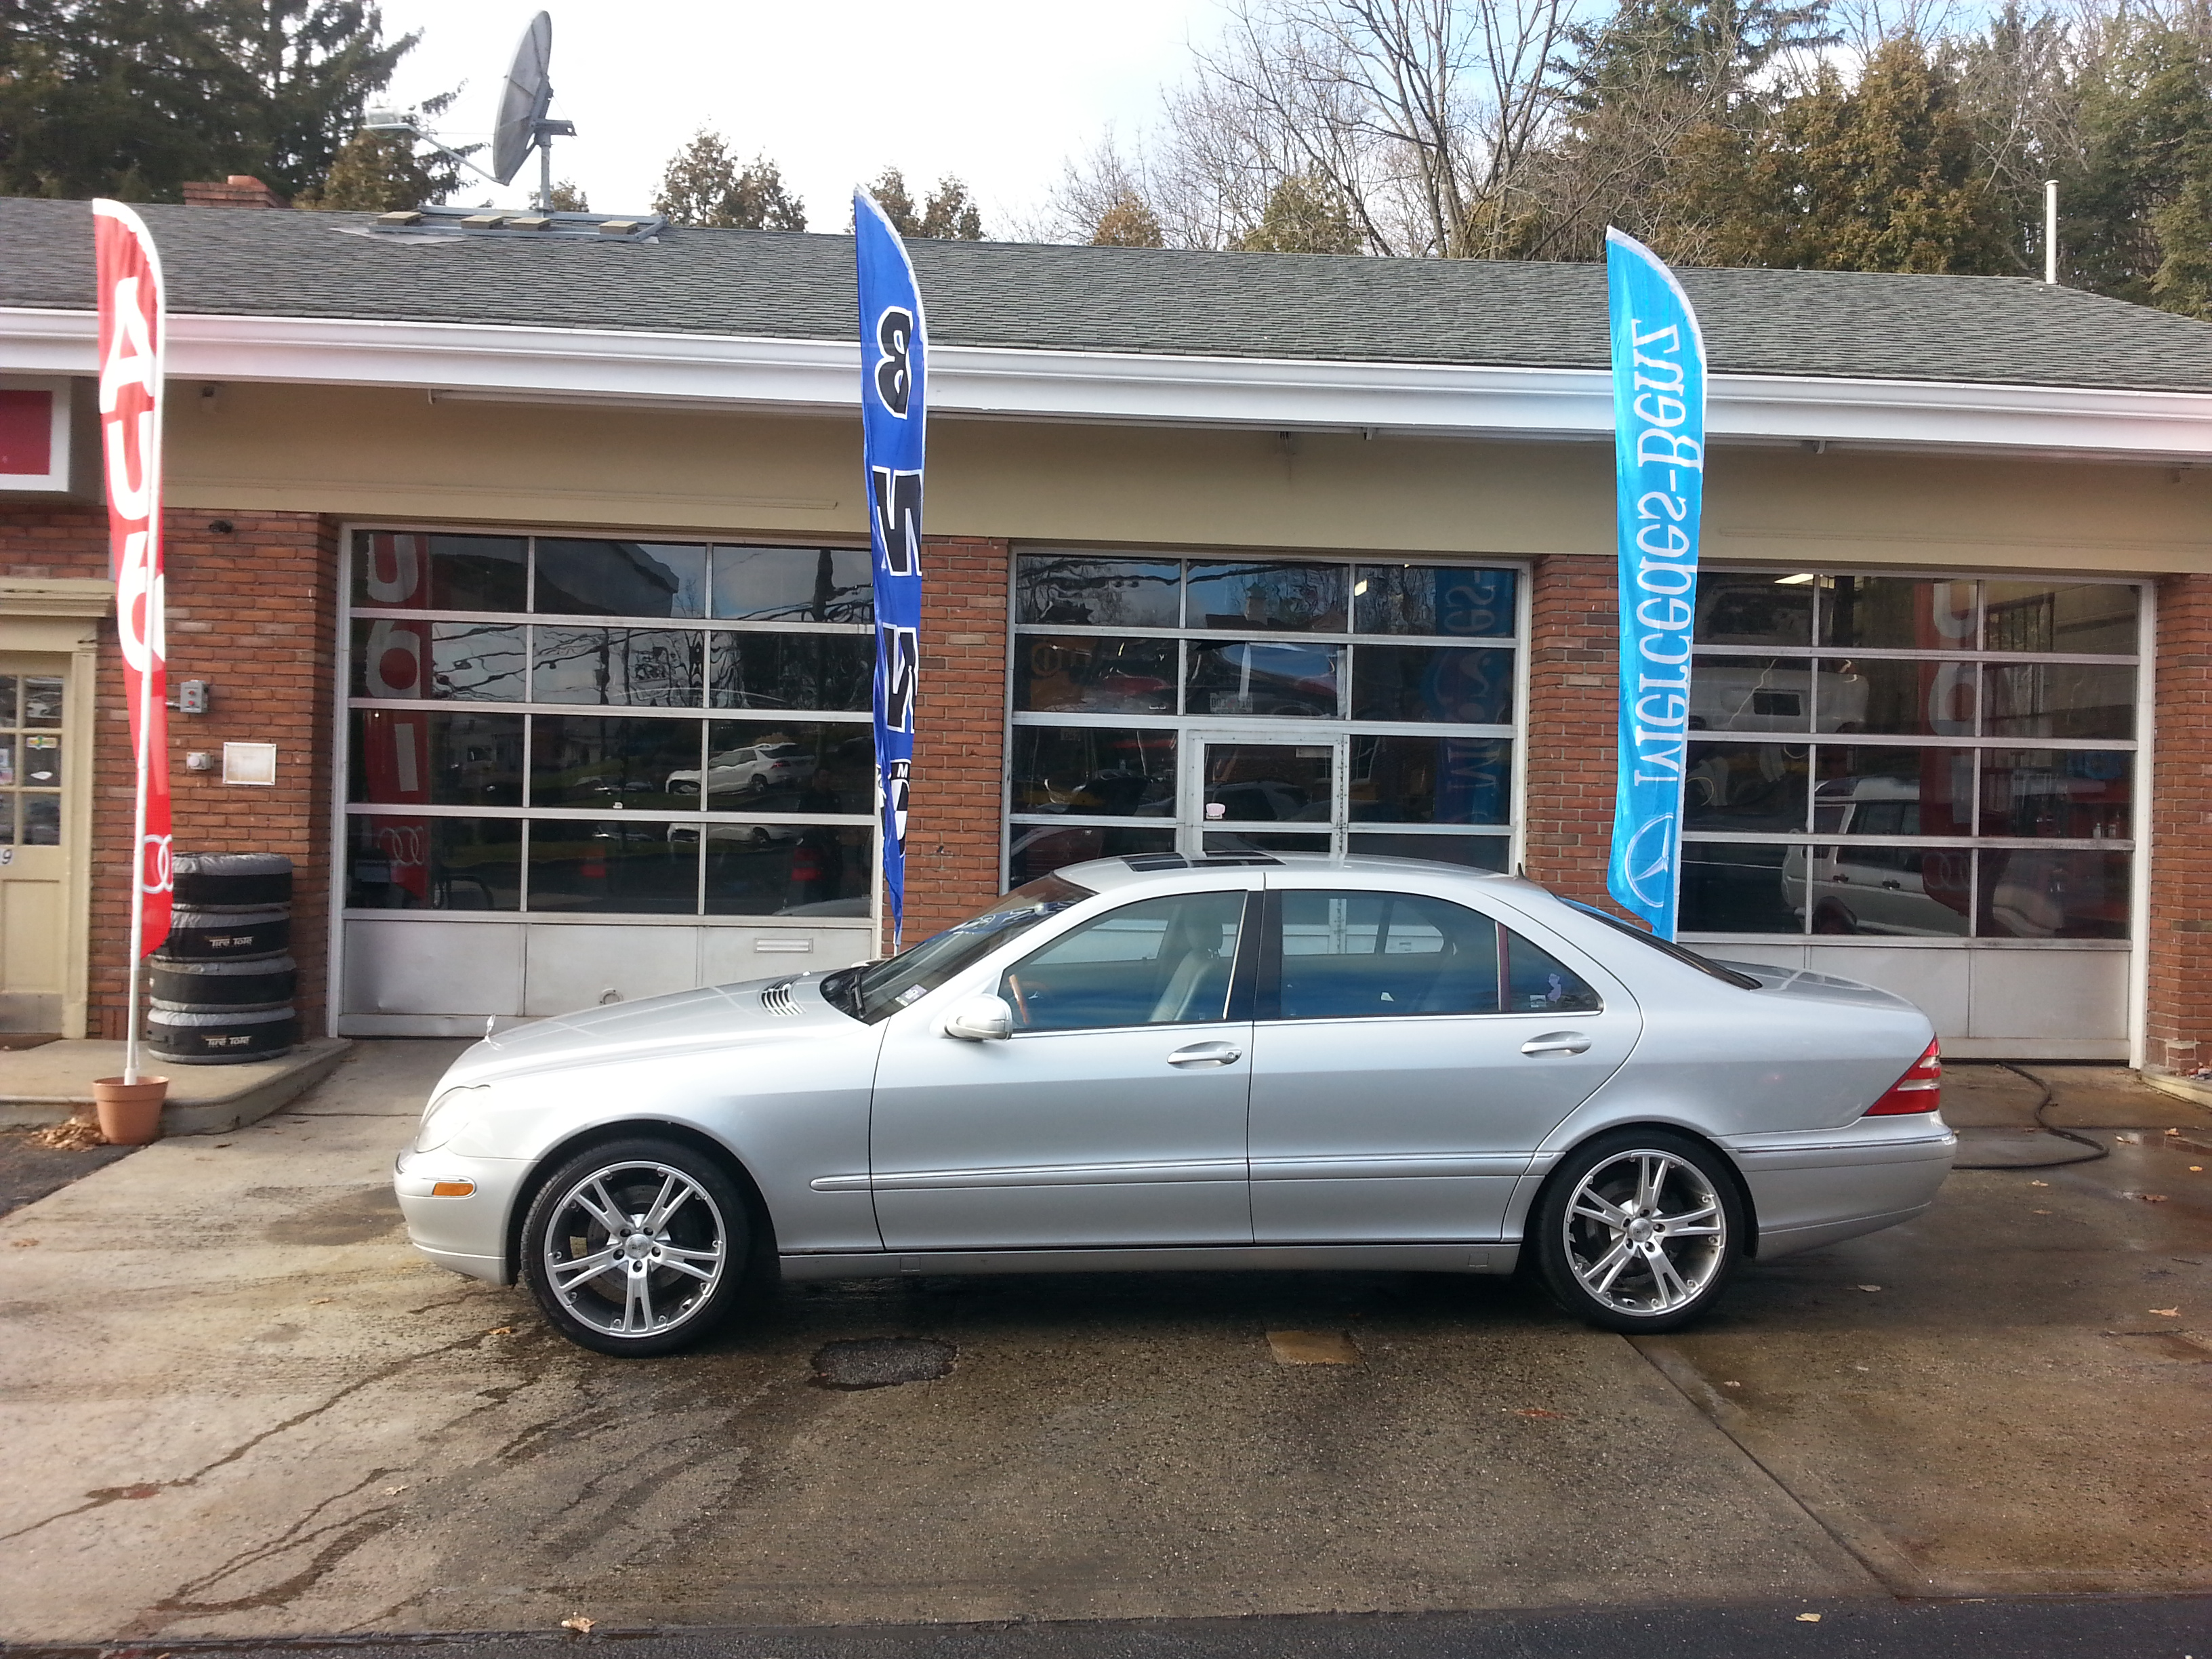 2001 mercedes benz s430 for sale europerformance llc audi repair shop bound brook new jersey. Black Bedroom Furniture Sets. Home Design Ideas